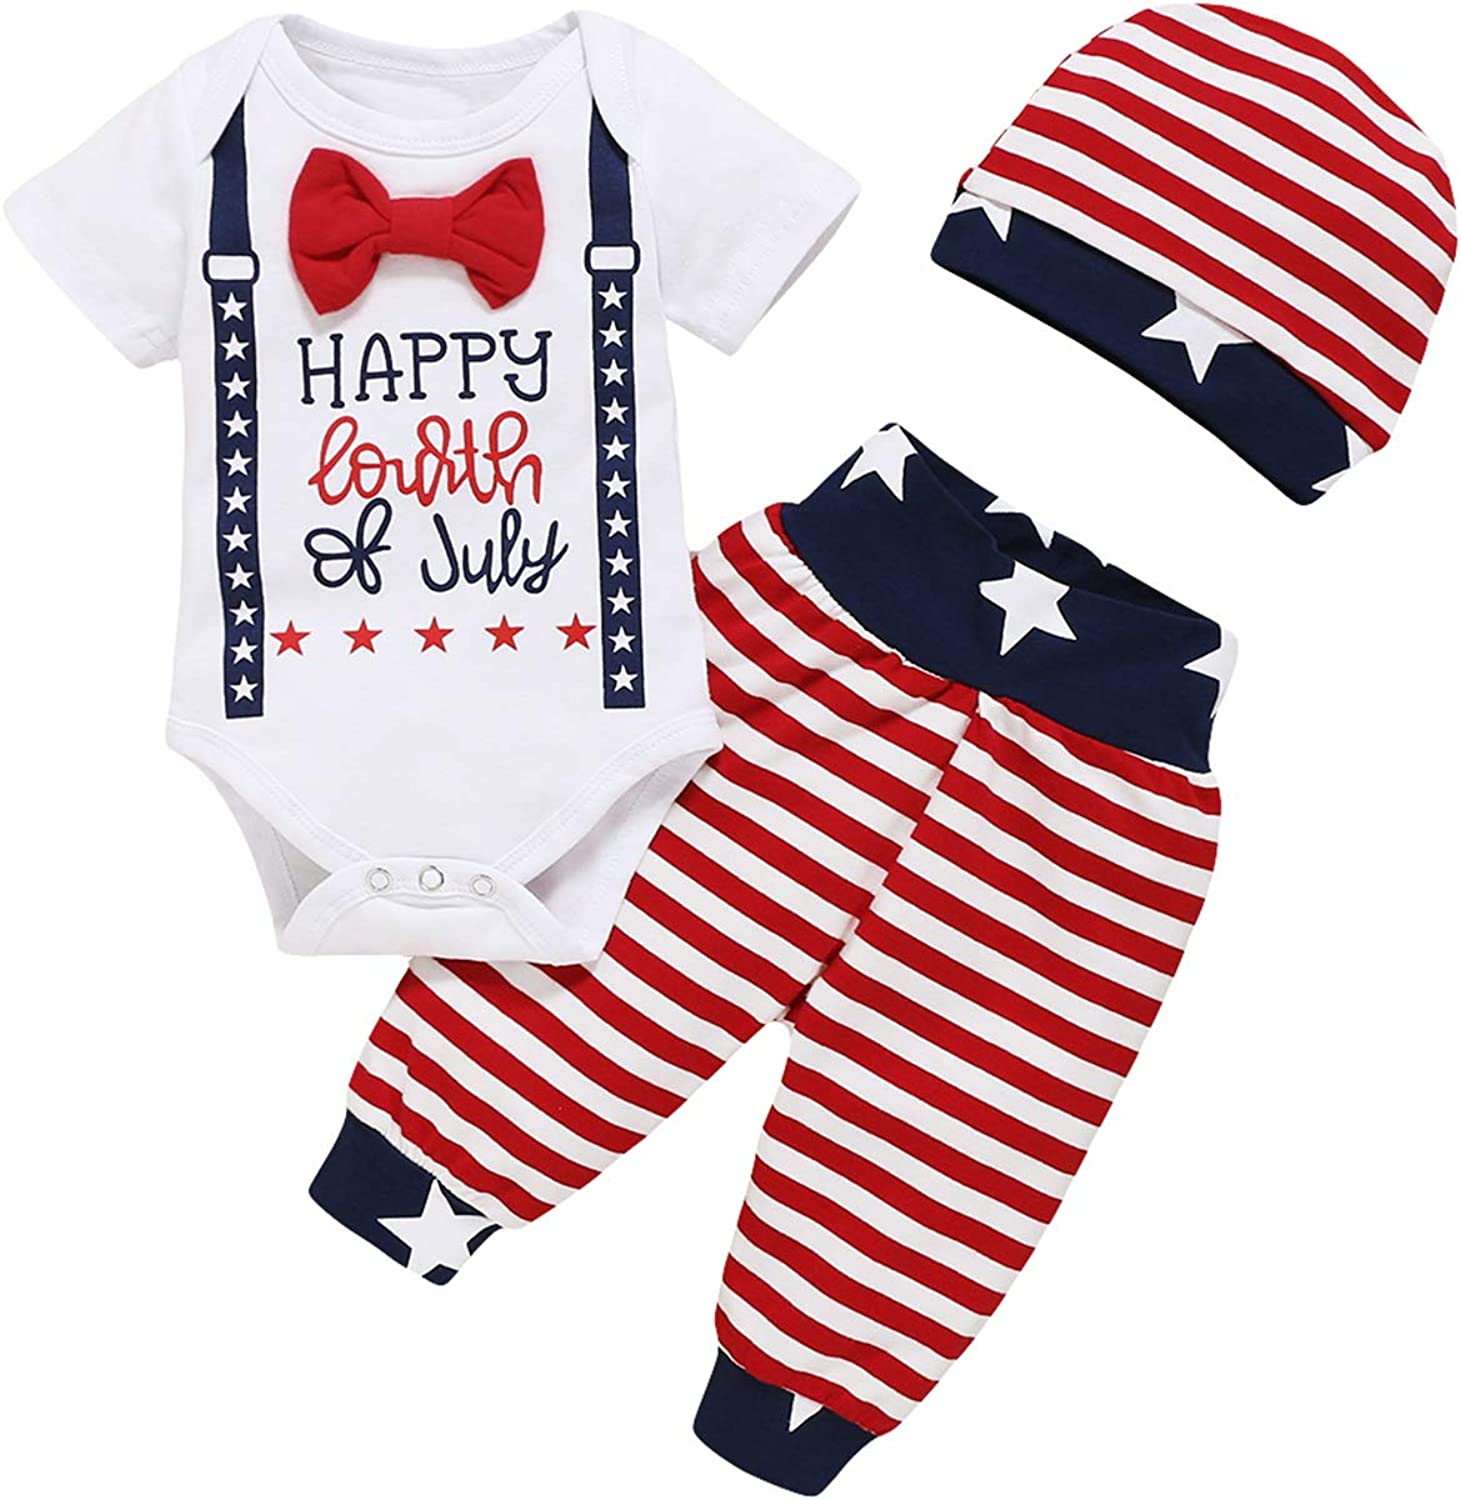 Shalofer Baby Boys My 1st 4th of July Outfits Infant American Flag Shorts Clothes